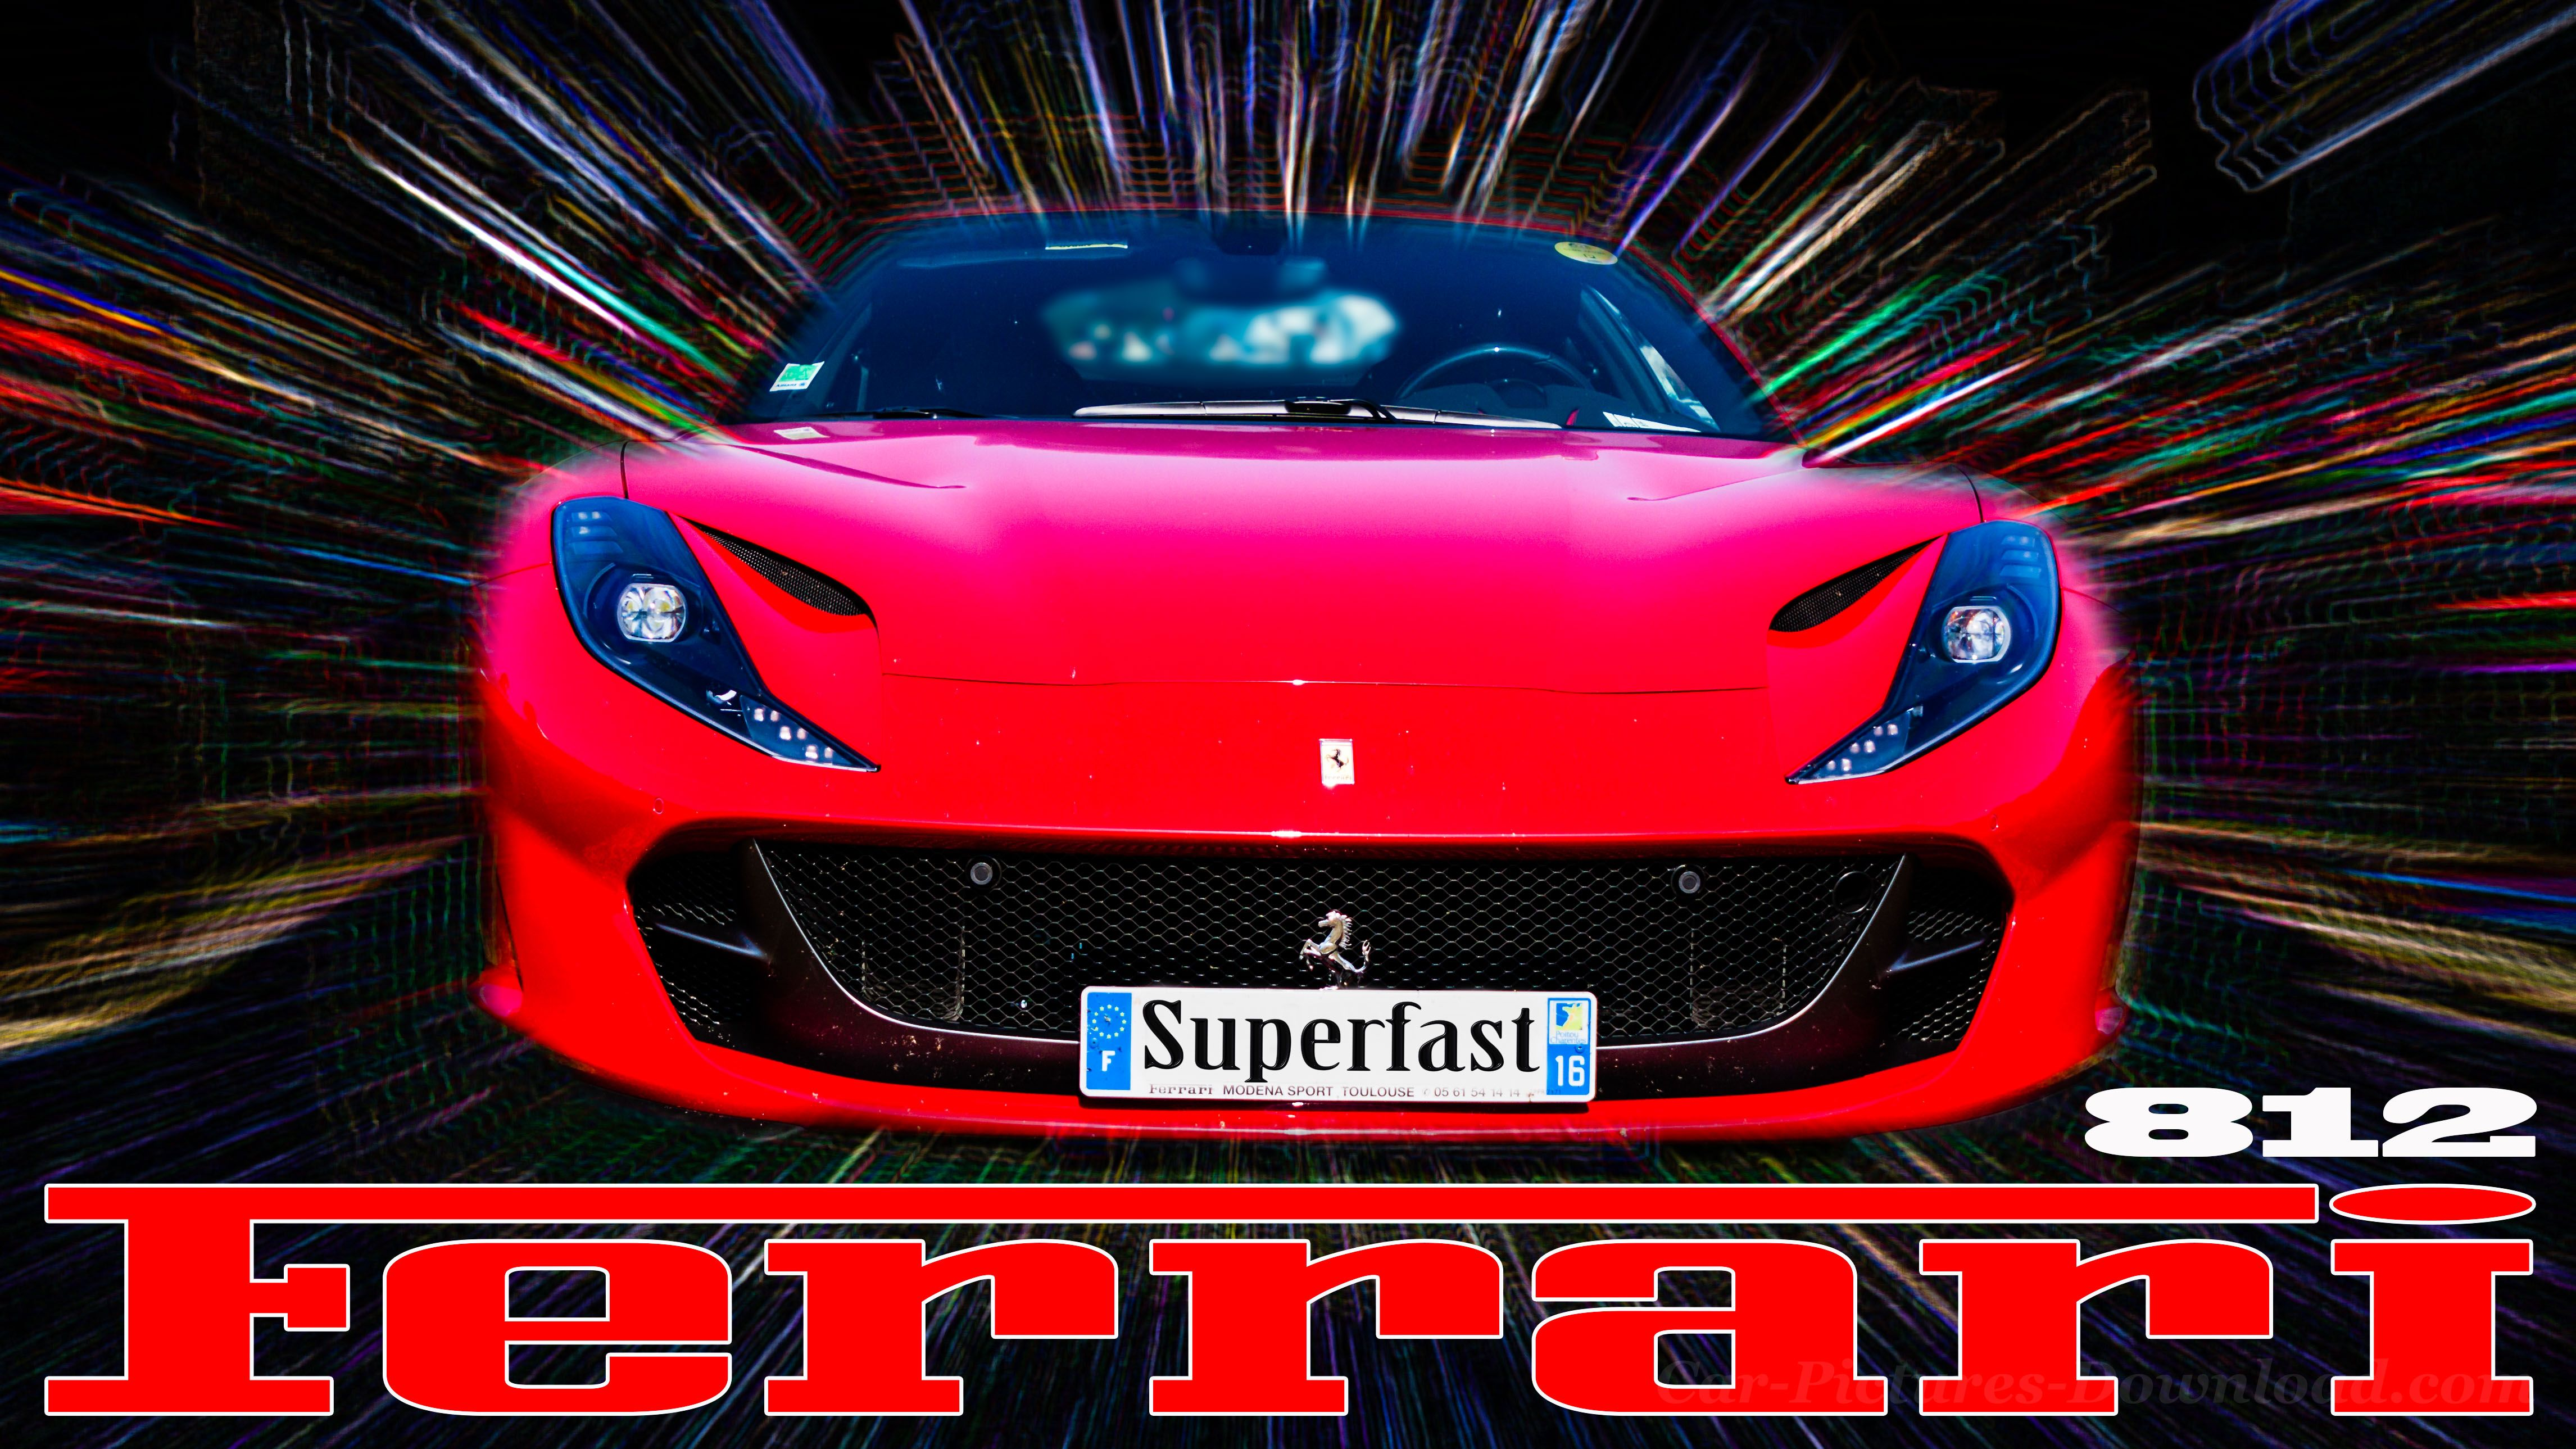 Sports Car Wallpapers On Wallpaperdog